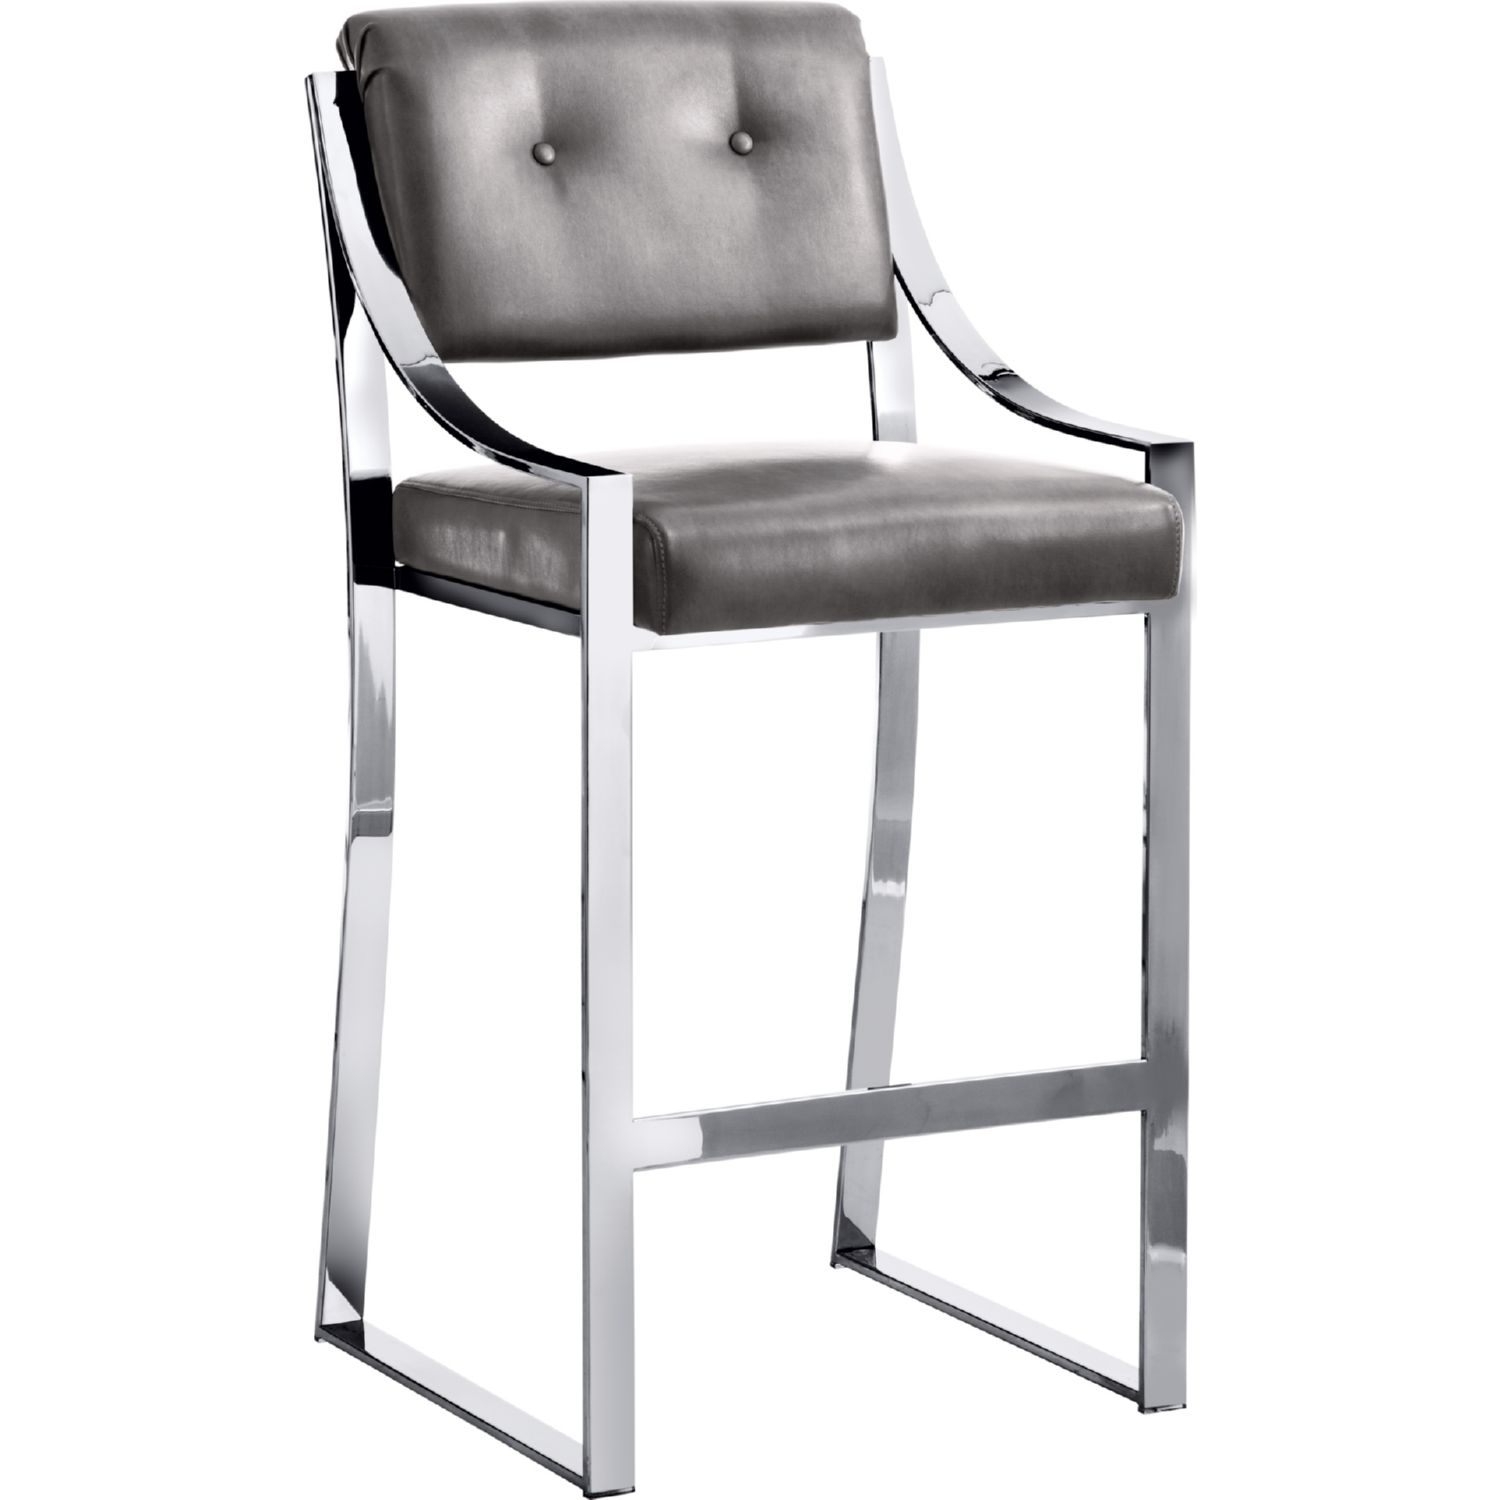 Savoy Bar Stool In Grey Leather W Polished Stainless Frame By